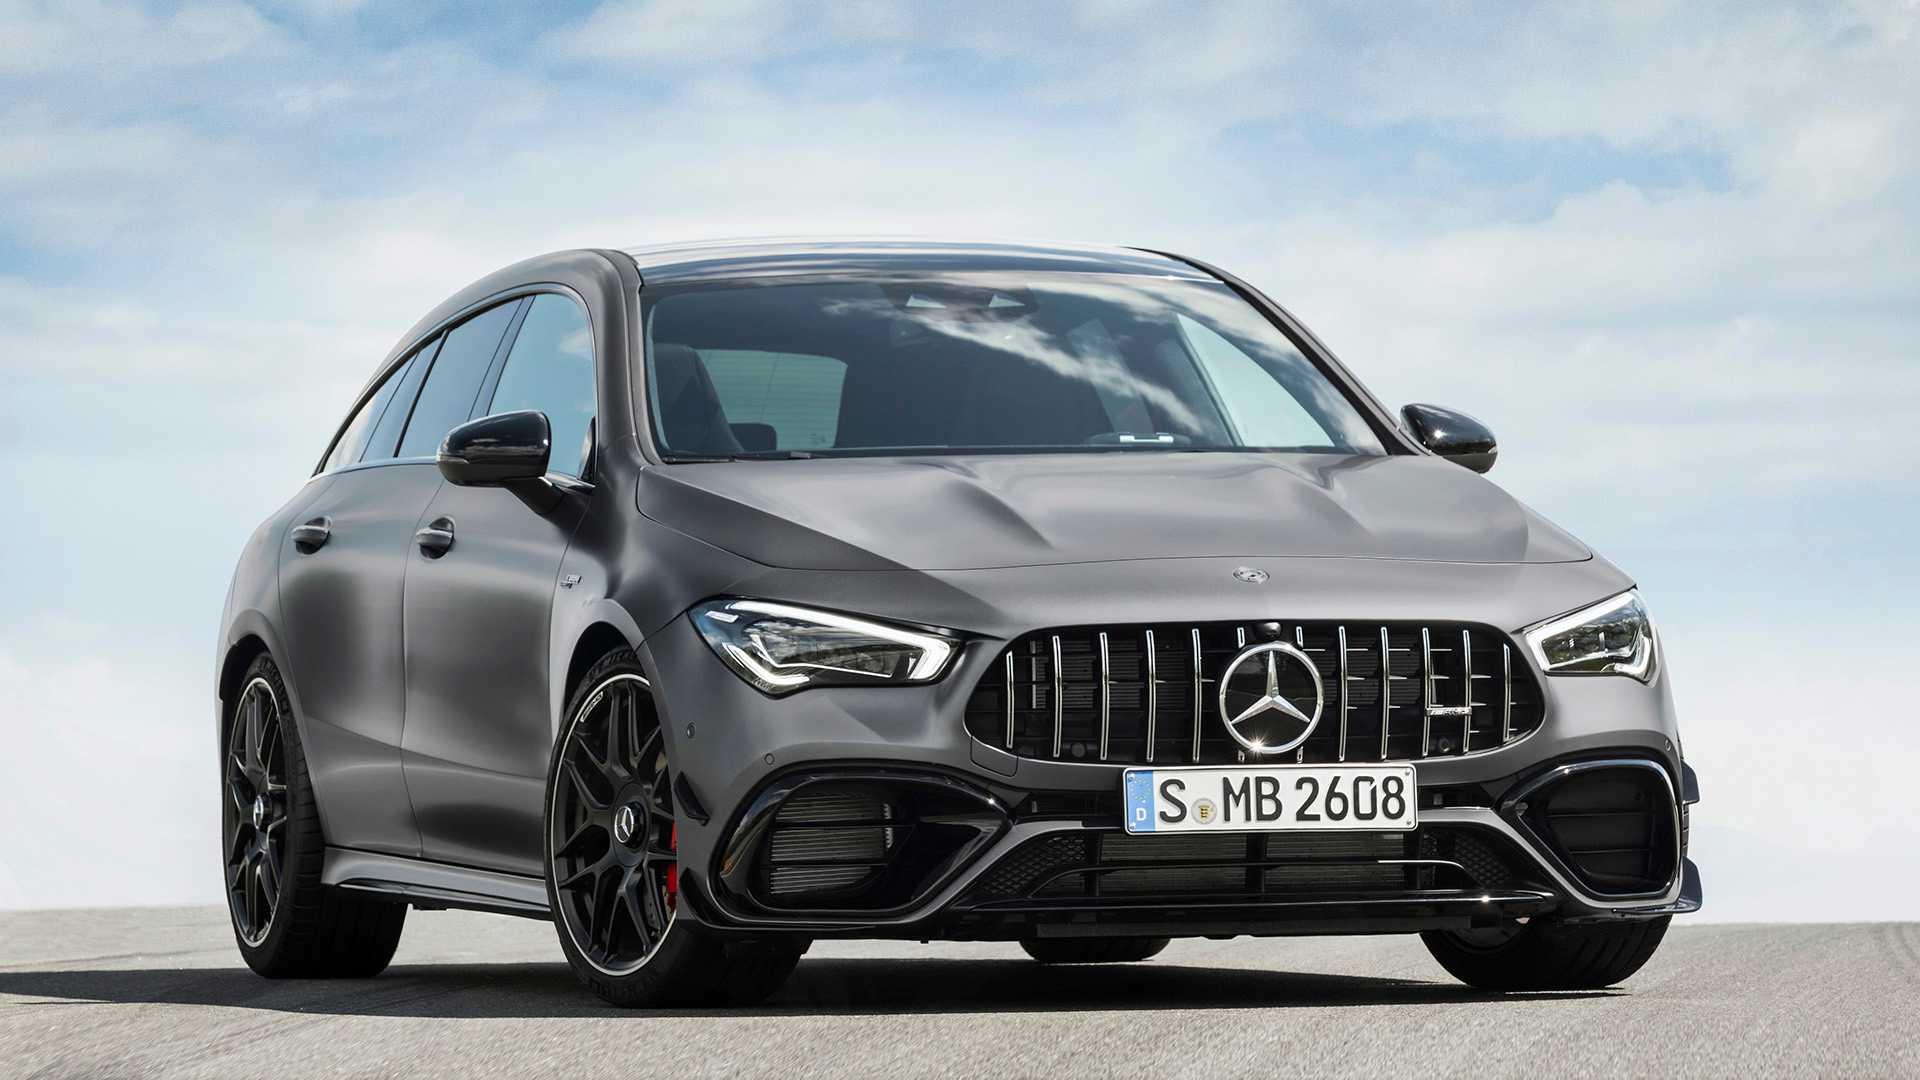 2020 Mercedes-AMG CLA 45 S 4MATIC+ Shooting Brake Front Wallpapers (15)